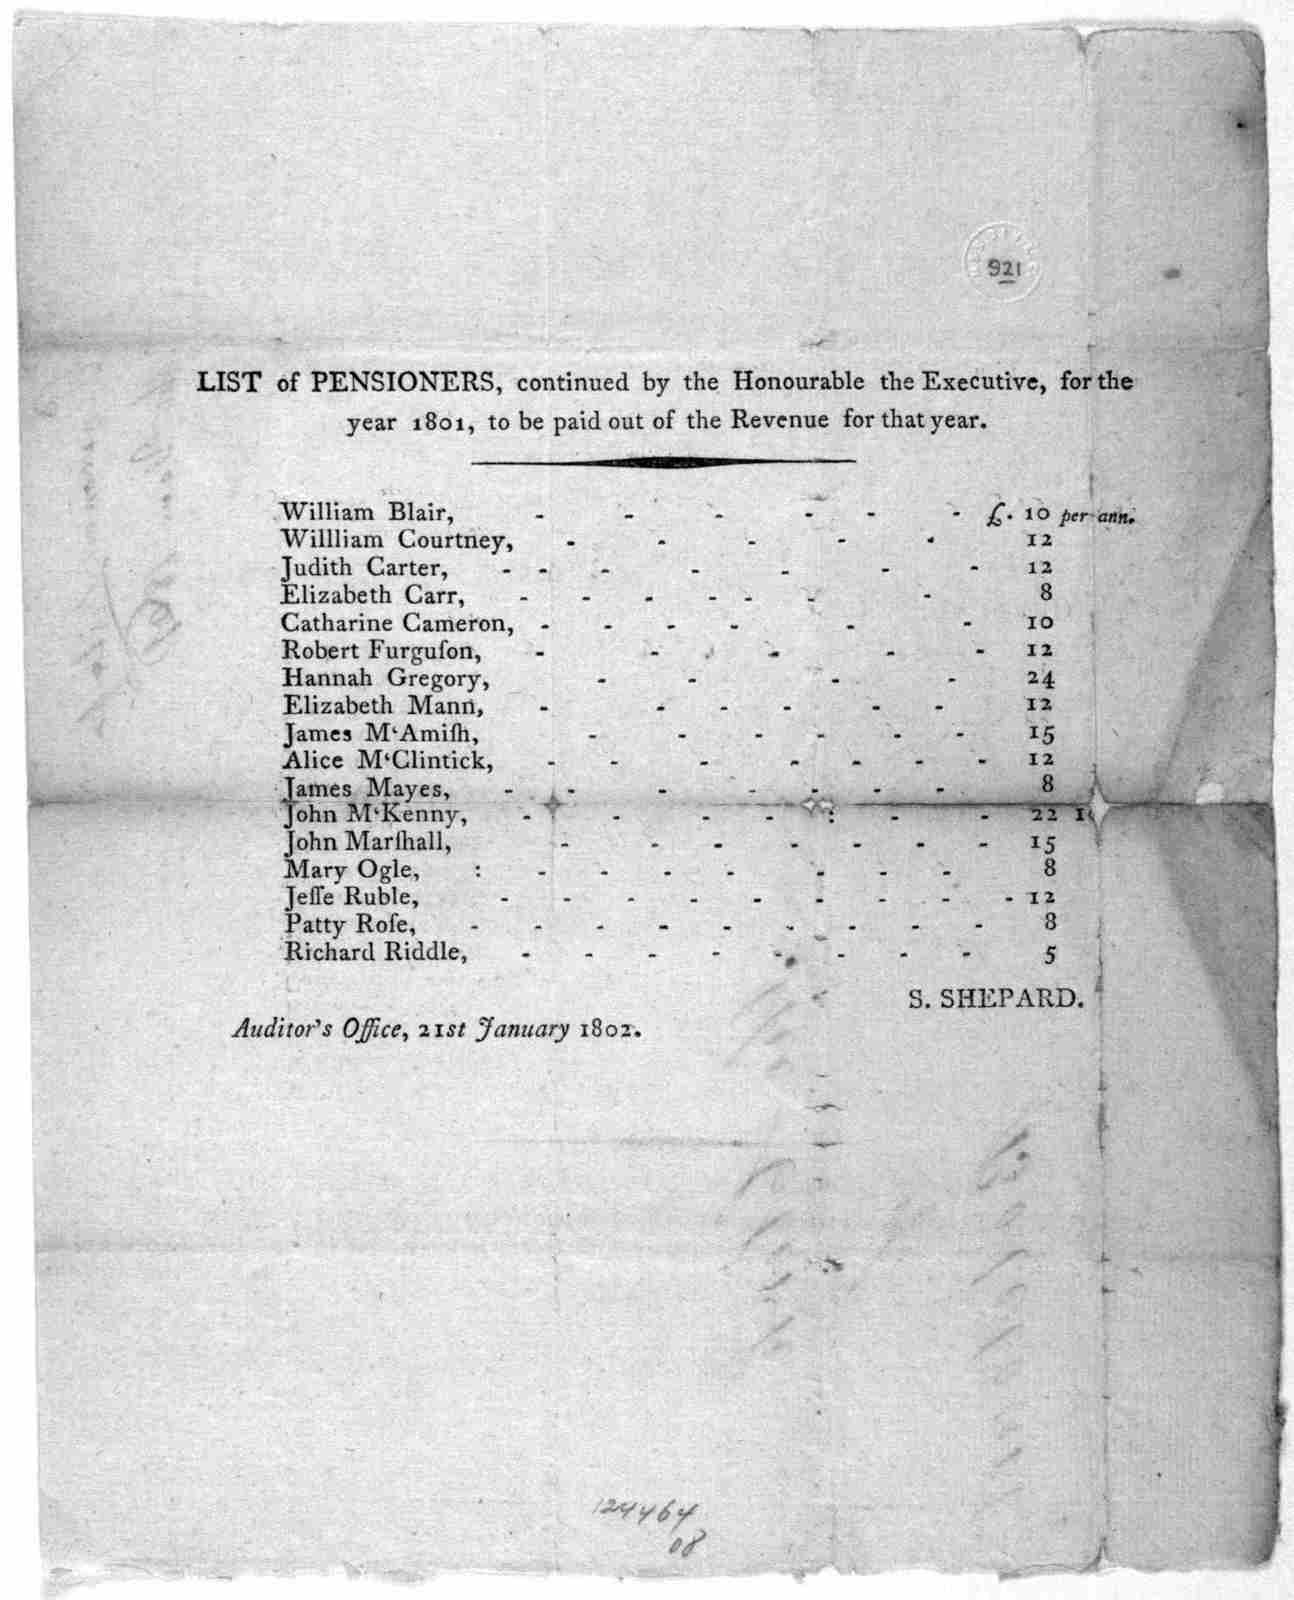 List of pensioners, continued by the Honourable the Executive, for the year 1801, to be paid out of the revenue for that year. [17 pensioners and allowances.] S. Shepard. Auditor's Office, 21st January, 1802 [Richmond, 1802].